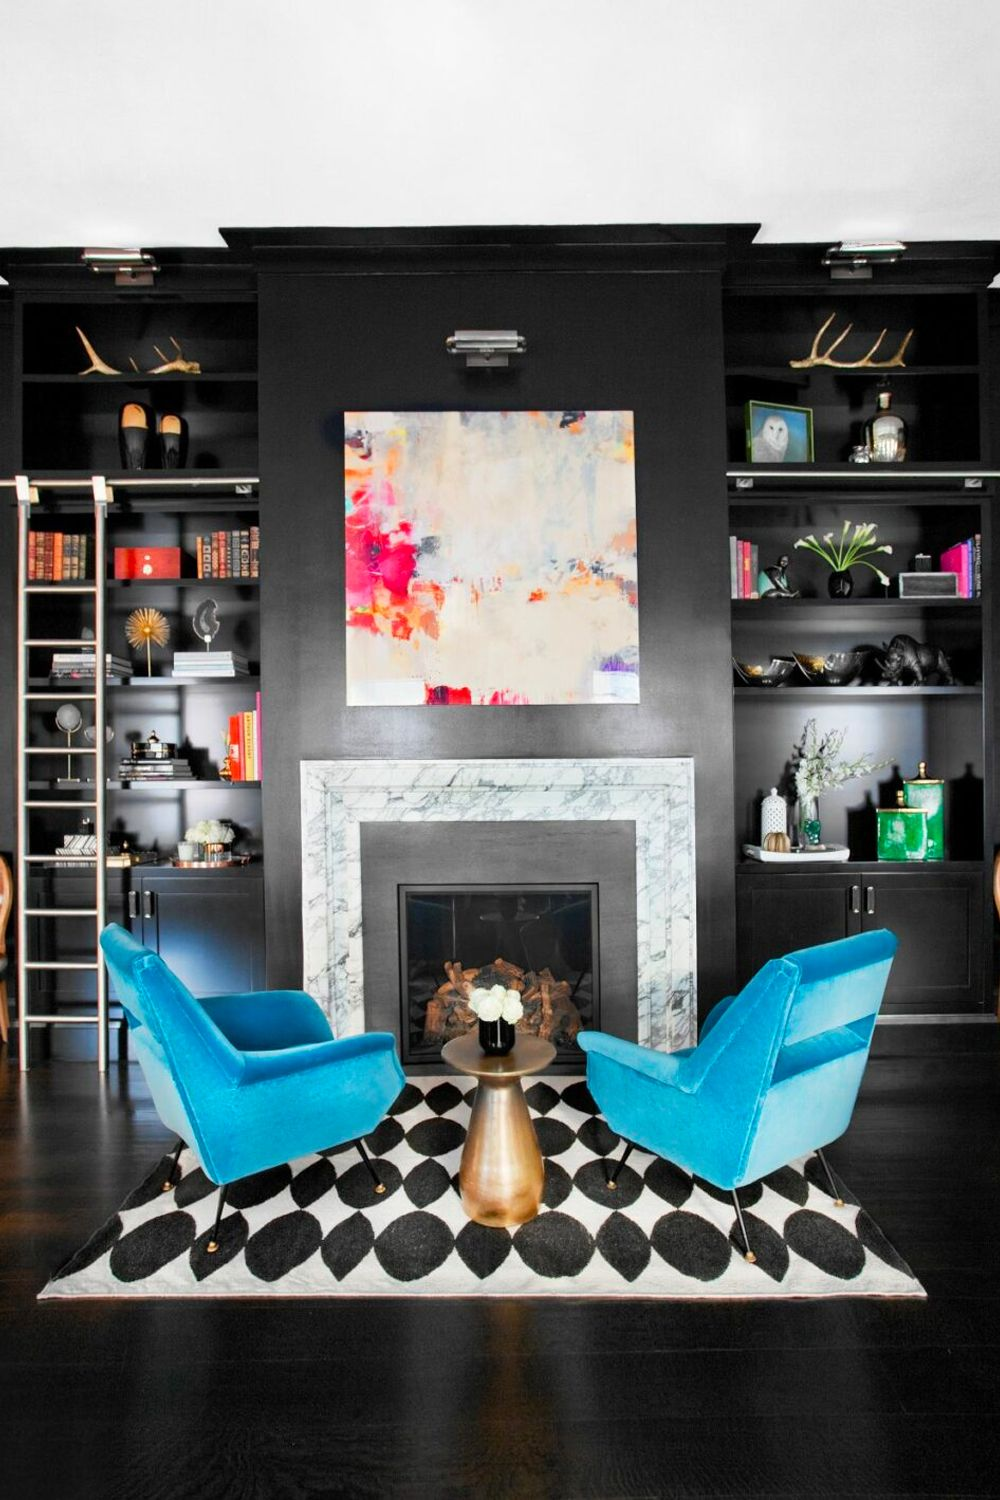 This contemporary fireplace designed by Nicole Fuller features dark bookcases paired with eclectic artworks for a vibrant touch Image: Courtesy of Nicole Fuller Interiors